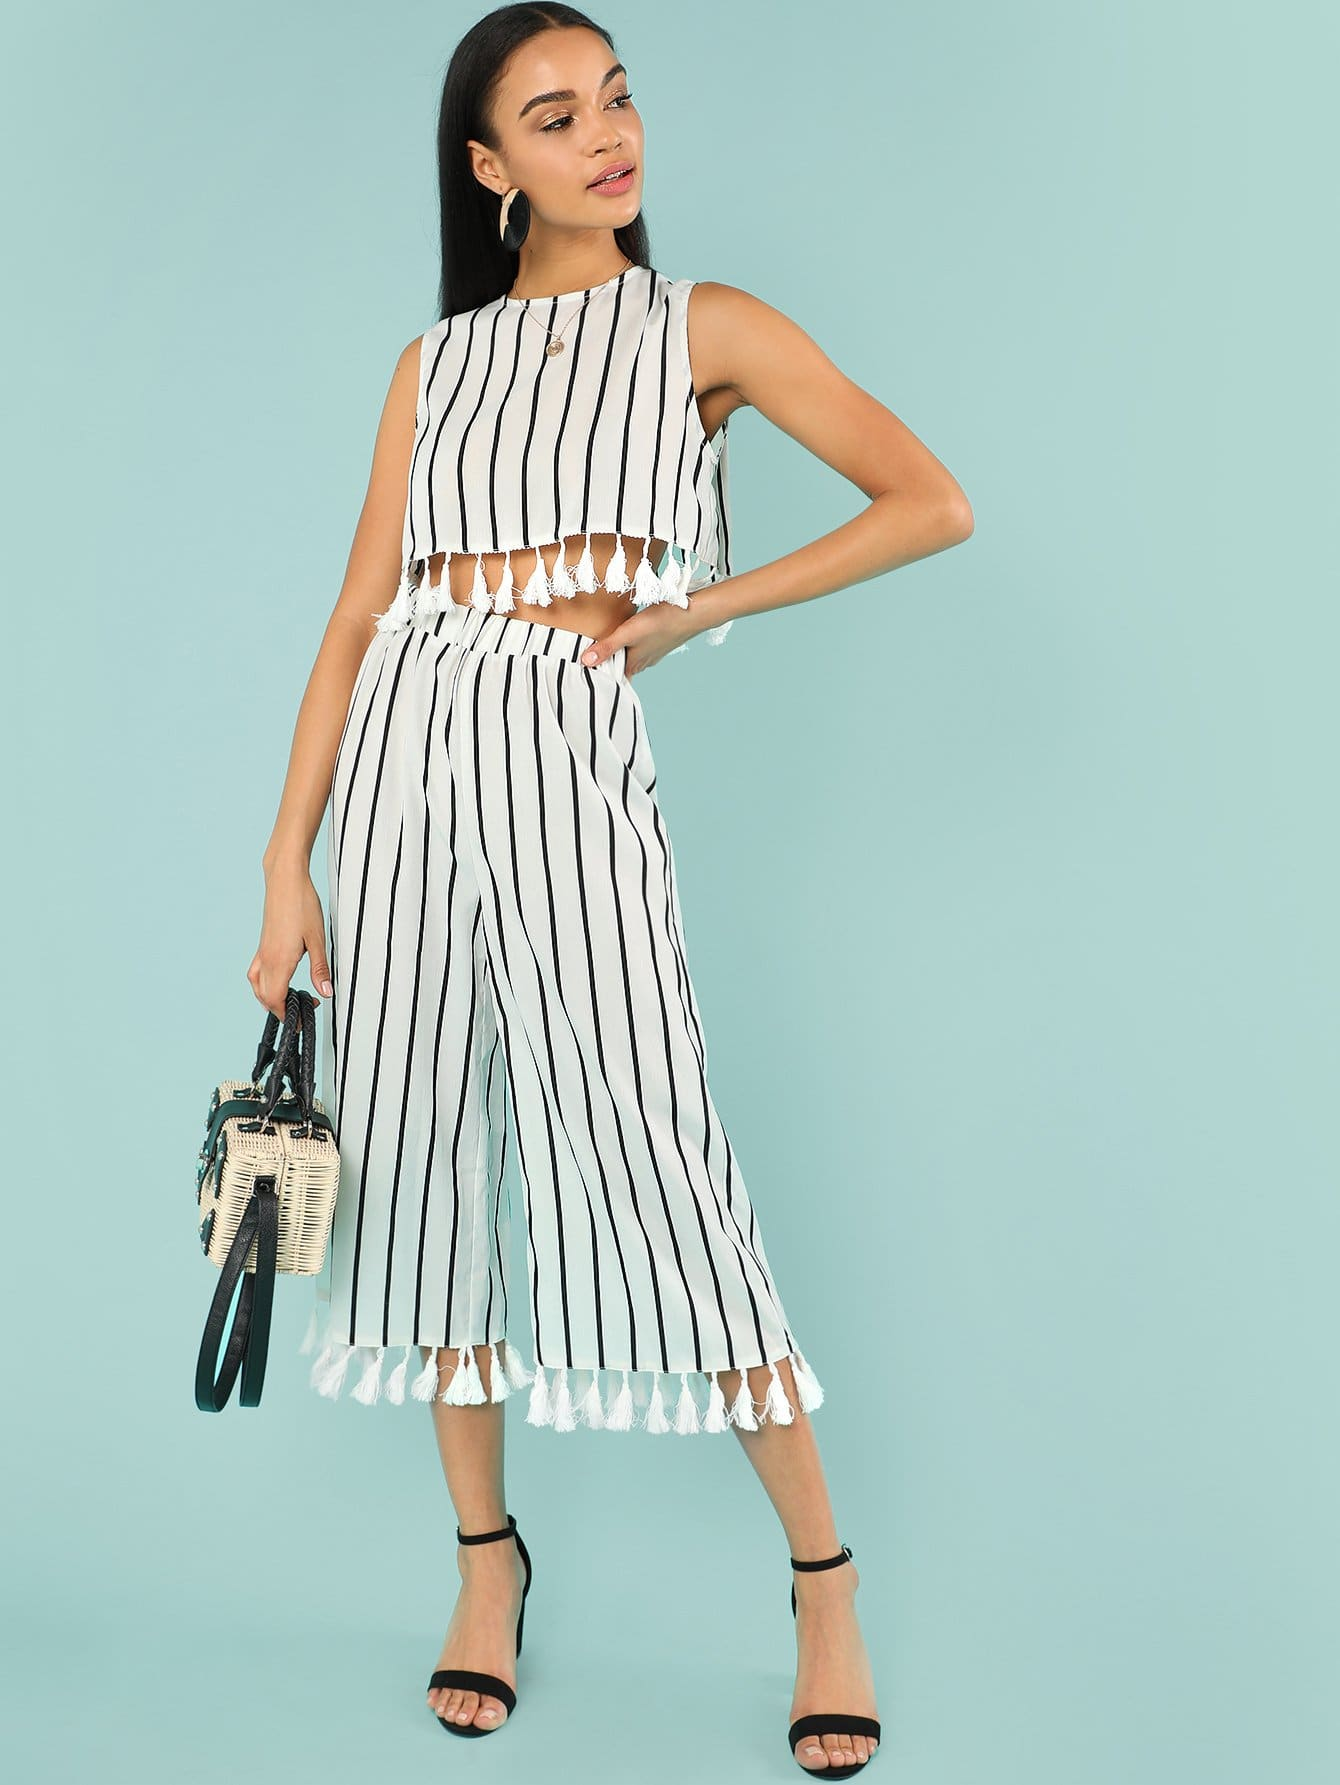 Tassel Trim Striped Shell Top & Culotte Pants Set lace trim shell top